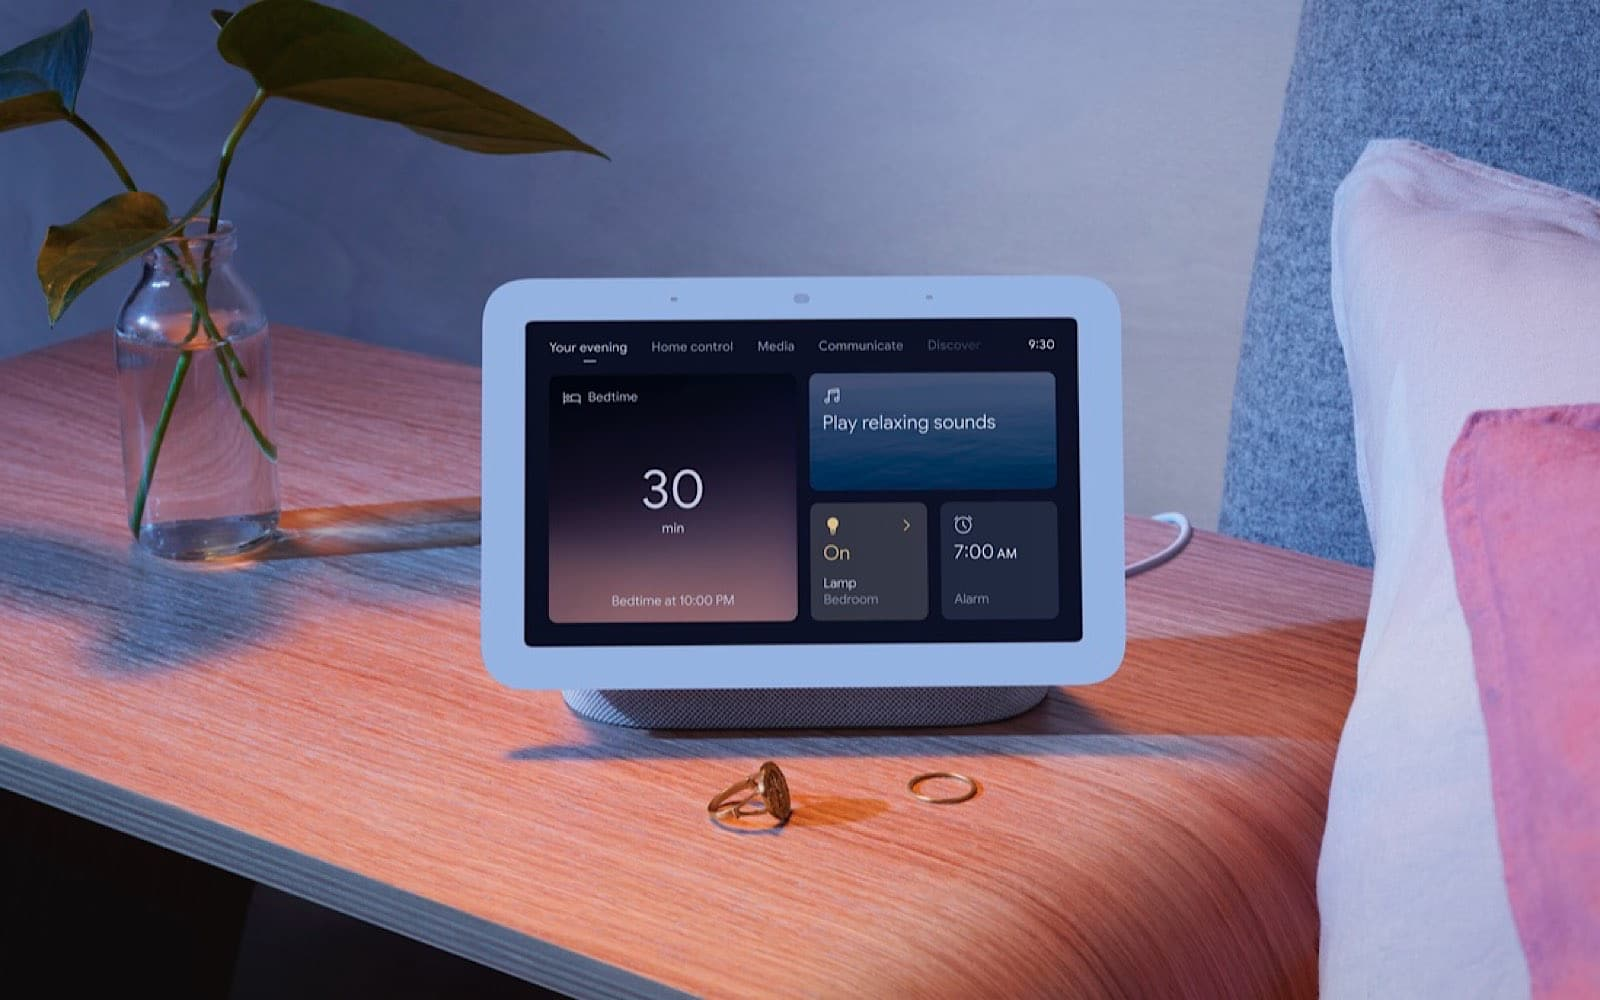 Google Nest Hub (2021) with sleep sensing